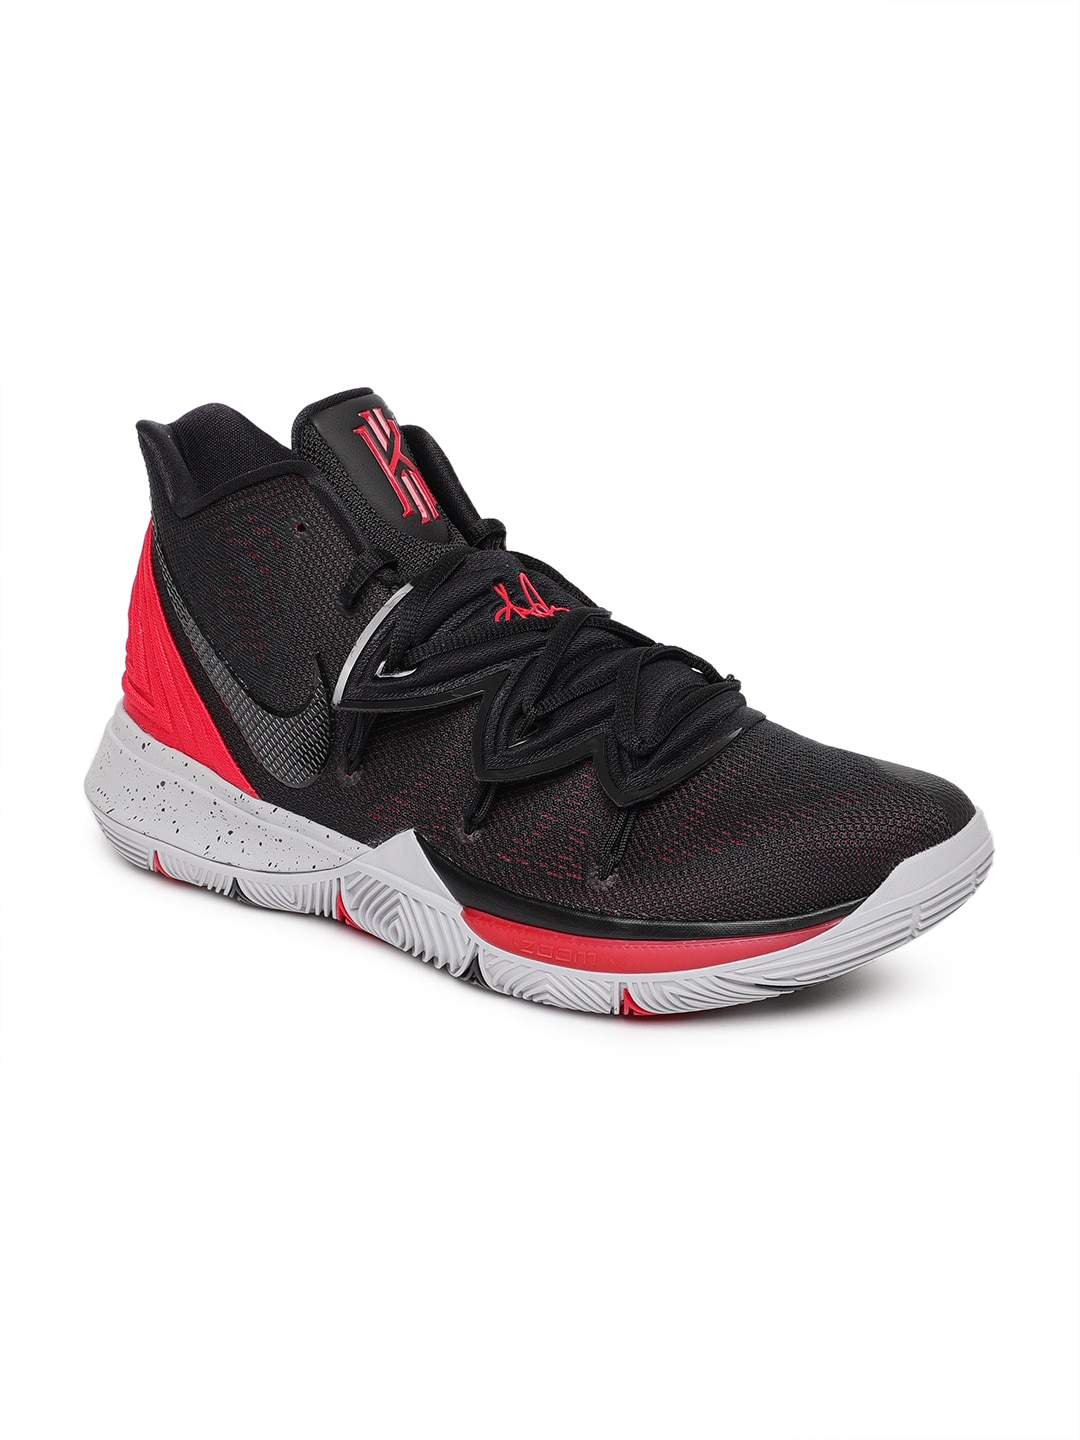 san francisco dfdf4 555d4 Nike Basketball Shoes   Buy Nike Basketball Shoes Online in India at Best  Price